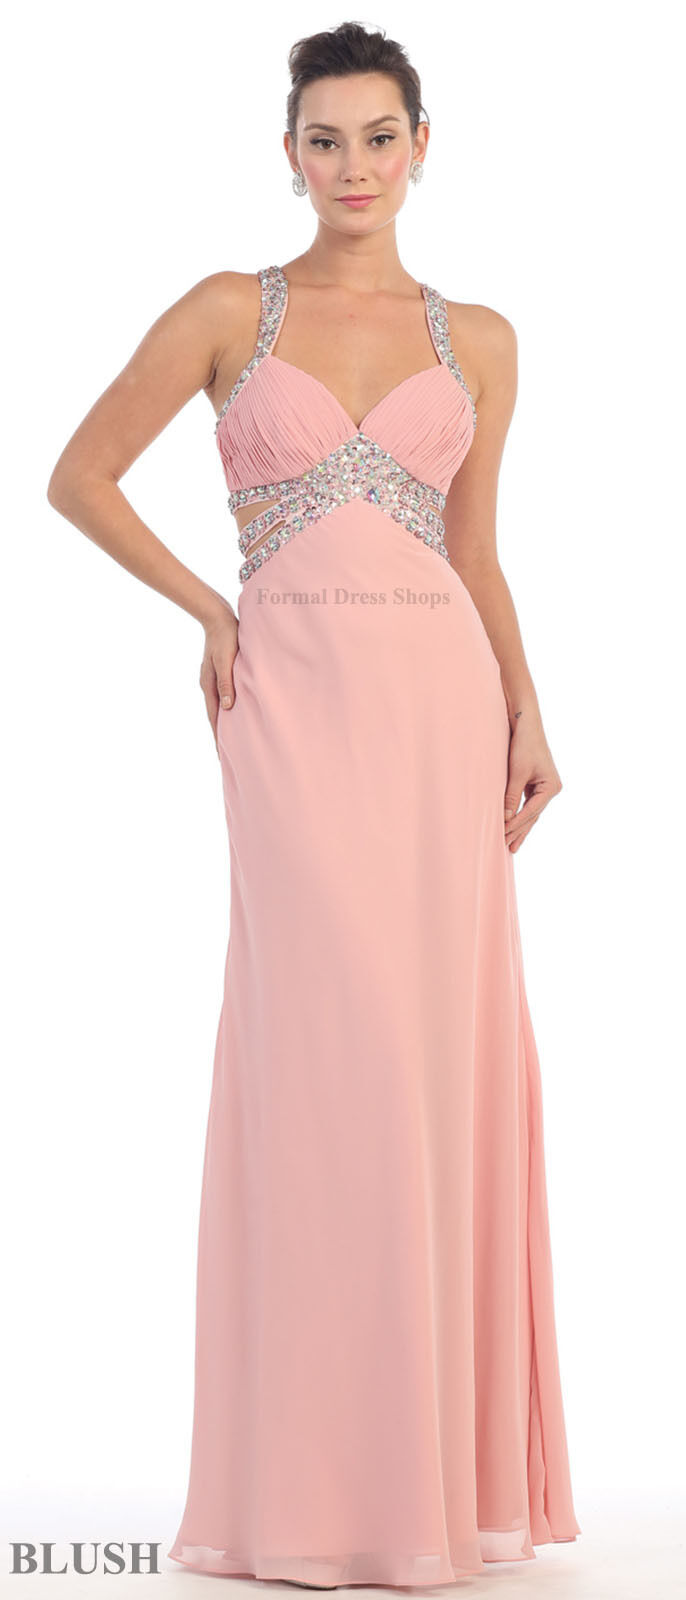 SALE !! SEXY PROM DRESS UNDER $100 EVENING SEMI FORMAL RED ...